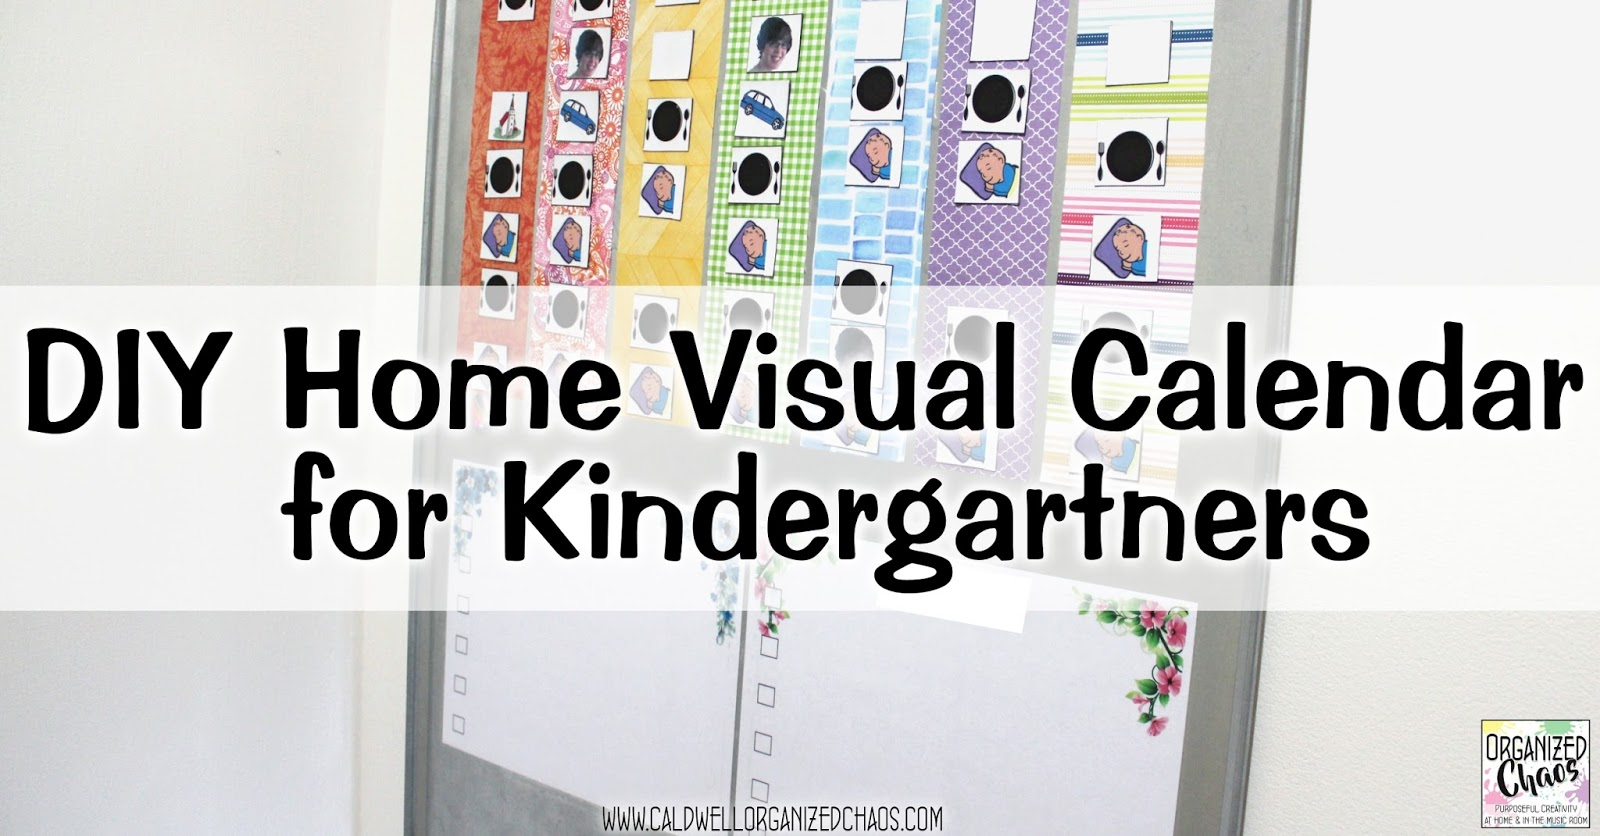 Diy Calendar For Kindergarten : Diy visual calendar for kindergartners organized chaos